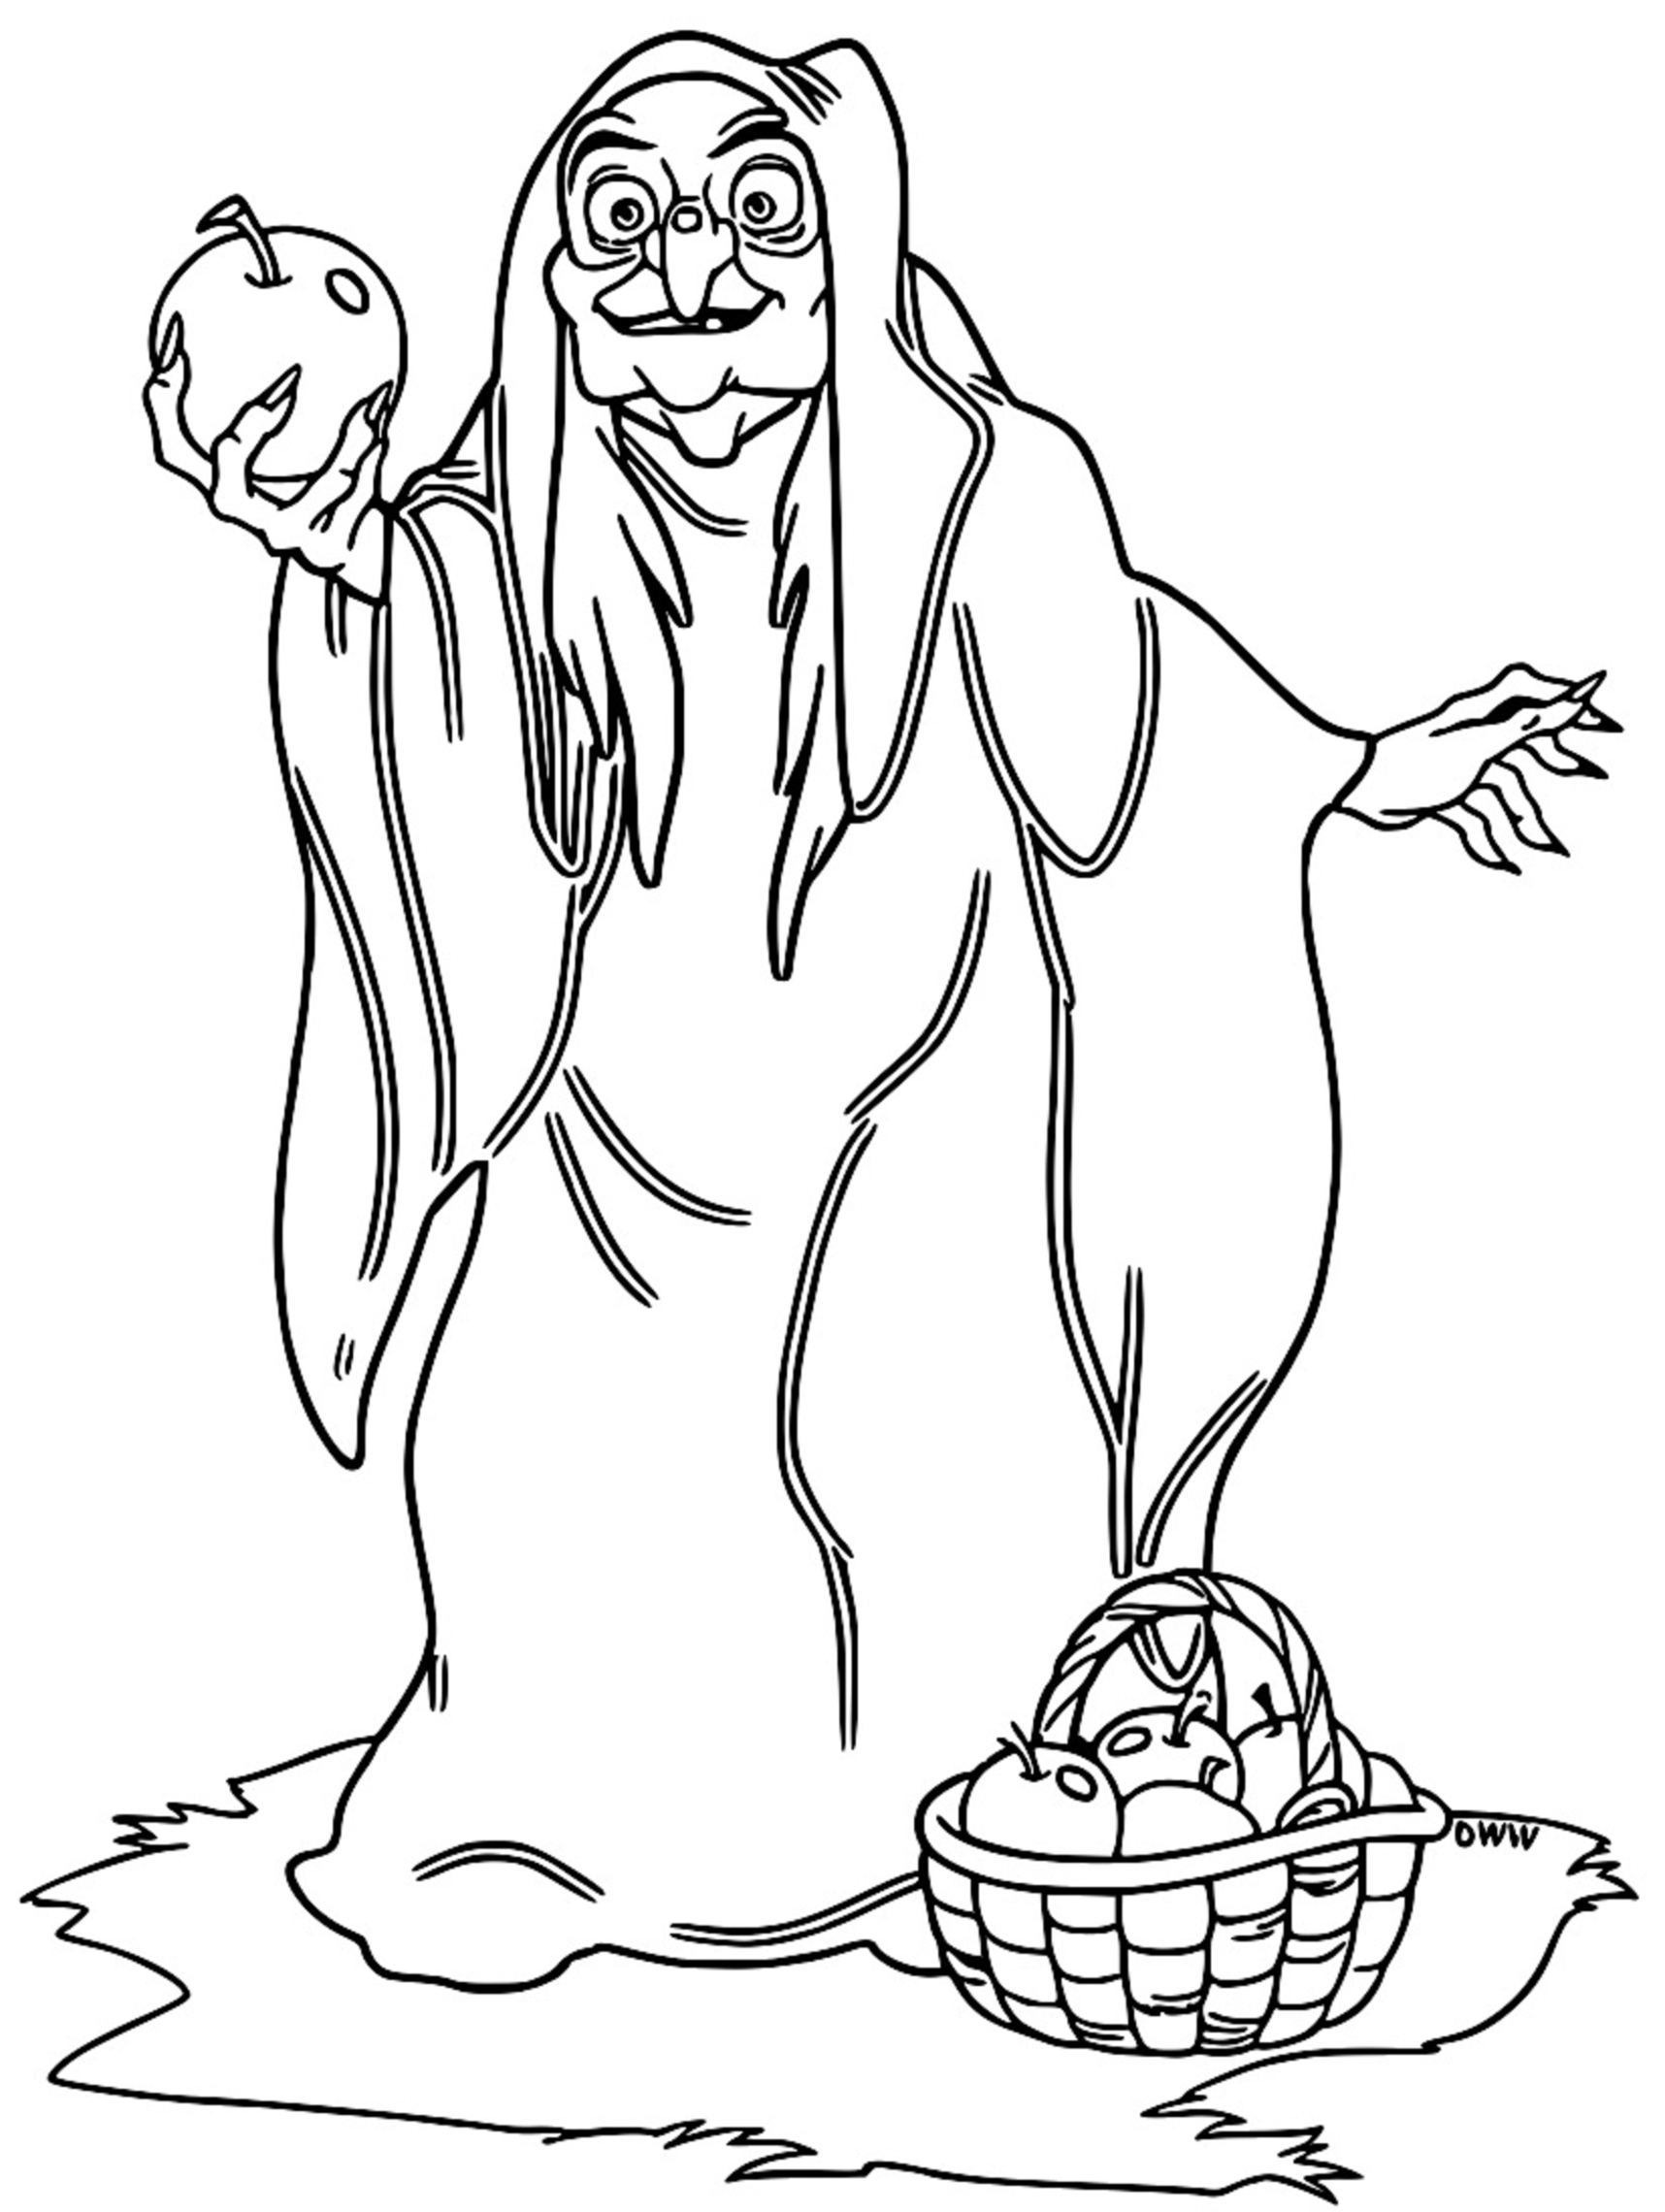 Snow White Evil Queen Witch And Huntsman Coloring Page 21